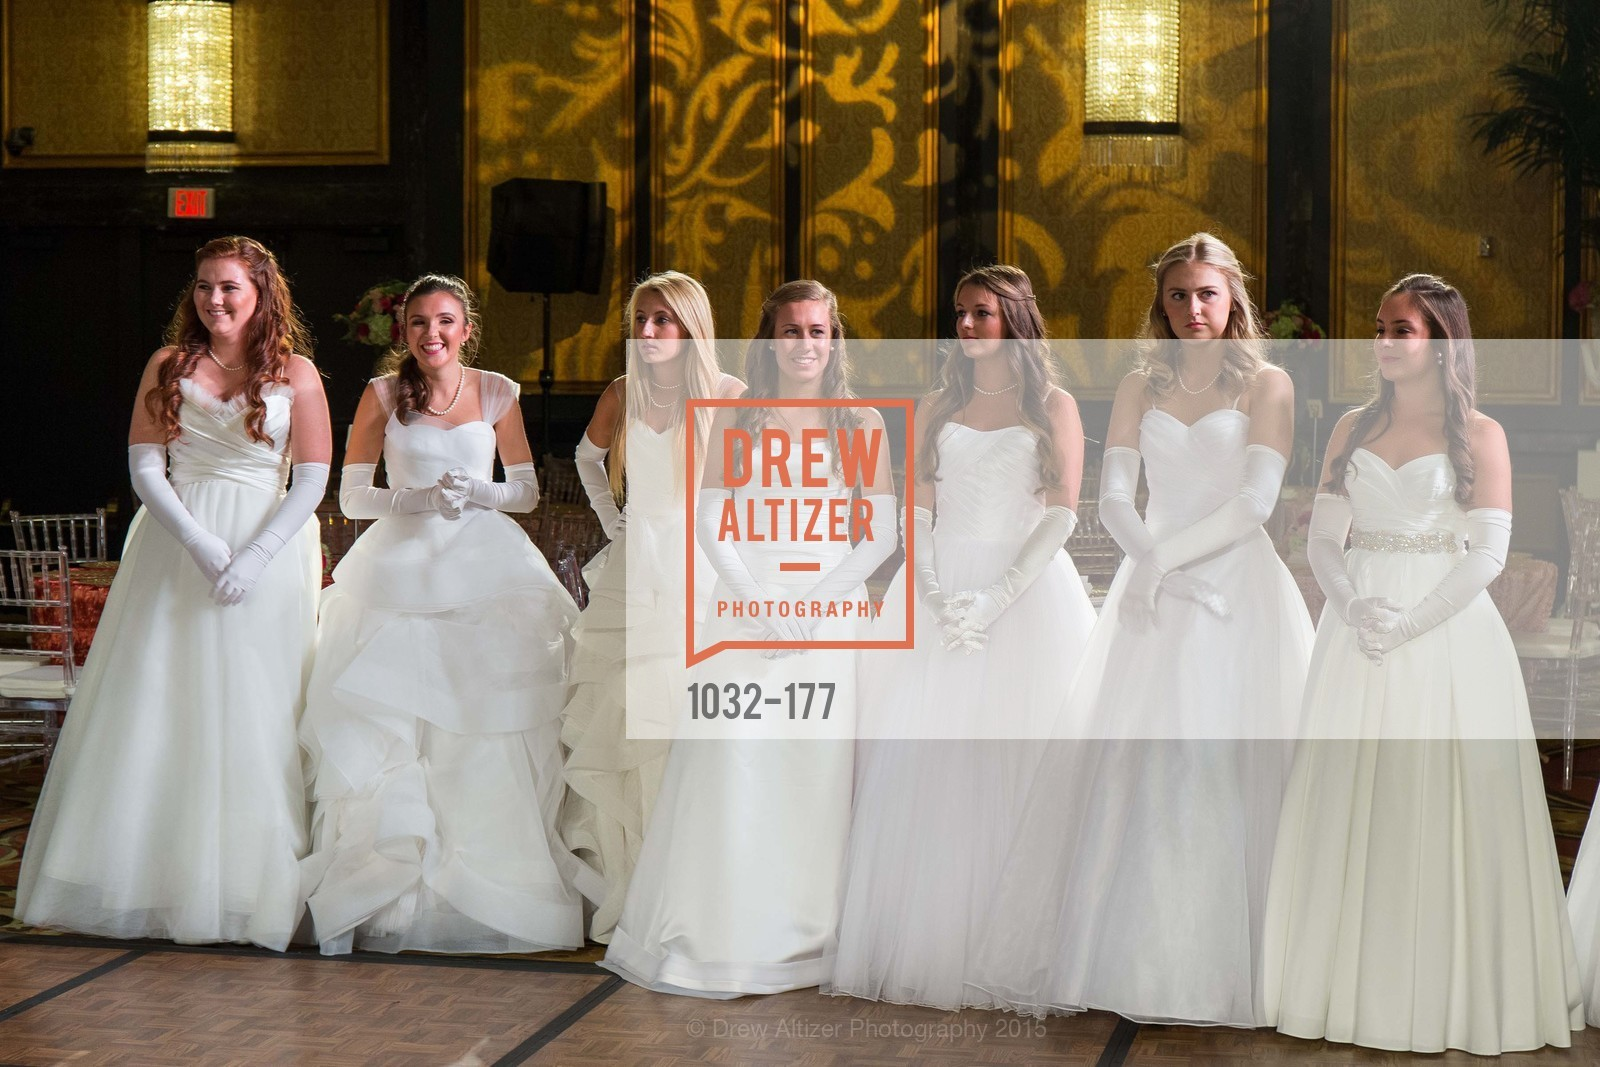 Kendall Marion Finnegan, Jennifer Hannah Baylis, Jennifer Suzanne Reynolds, Sarah Elisabeth Jackmauh, Hailey Elizabeth Cusack, Sara Scannell, Rachael Jayne Maier, The 2015 San Francisco Debutante Ball, The Westin St. Francis San Francisco Union Square. 335 Powell St, June 20th, 2015,Drew Altizer, Drew Altizer Photography, full-service agency, private events, San Francisco photographer, photographer california